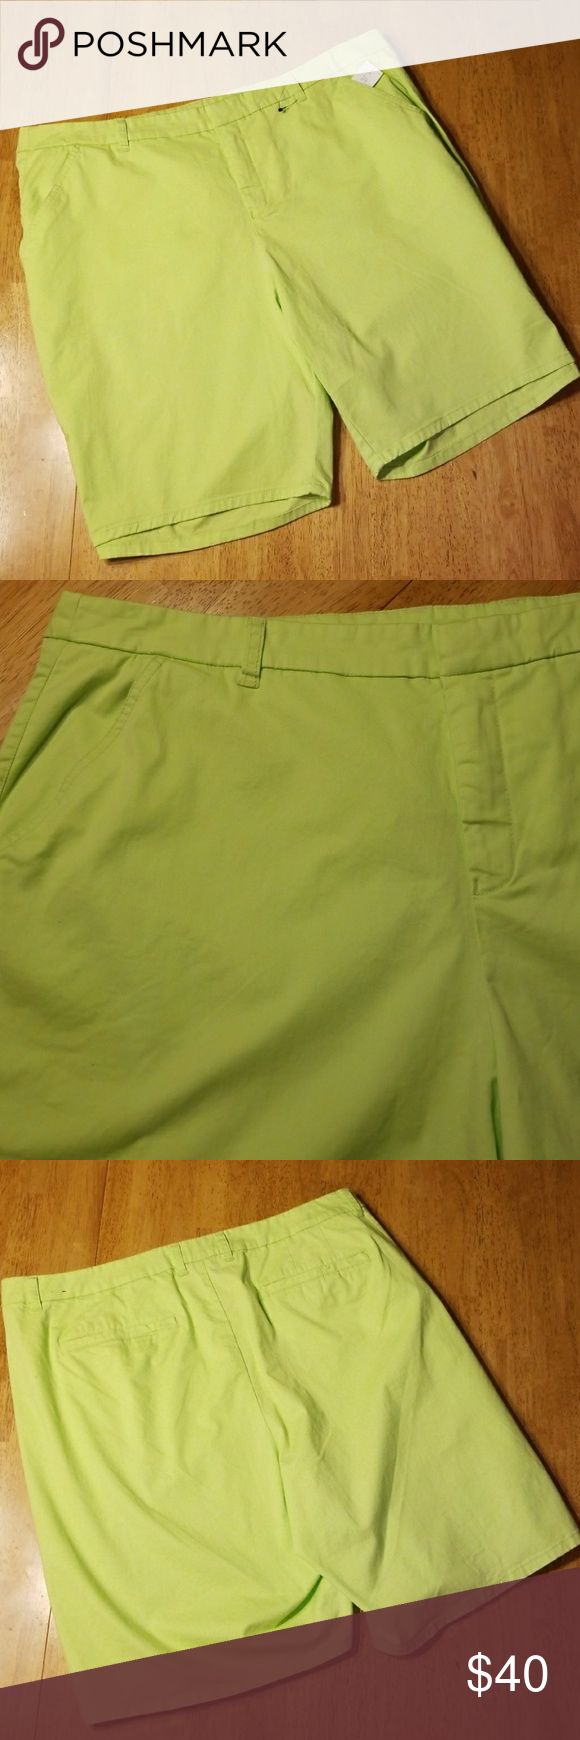 "LANE BRYANT BERMUDAS Bright Lime Green Shorts By Lane Bryant.  Size 24. Rise 12"" Inseam 10"" New With Tags Never Worn Extra Button Attached Lane Bryant Shorts"